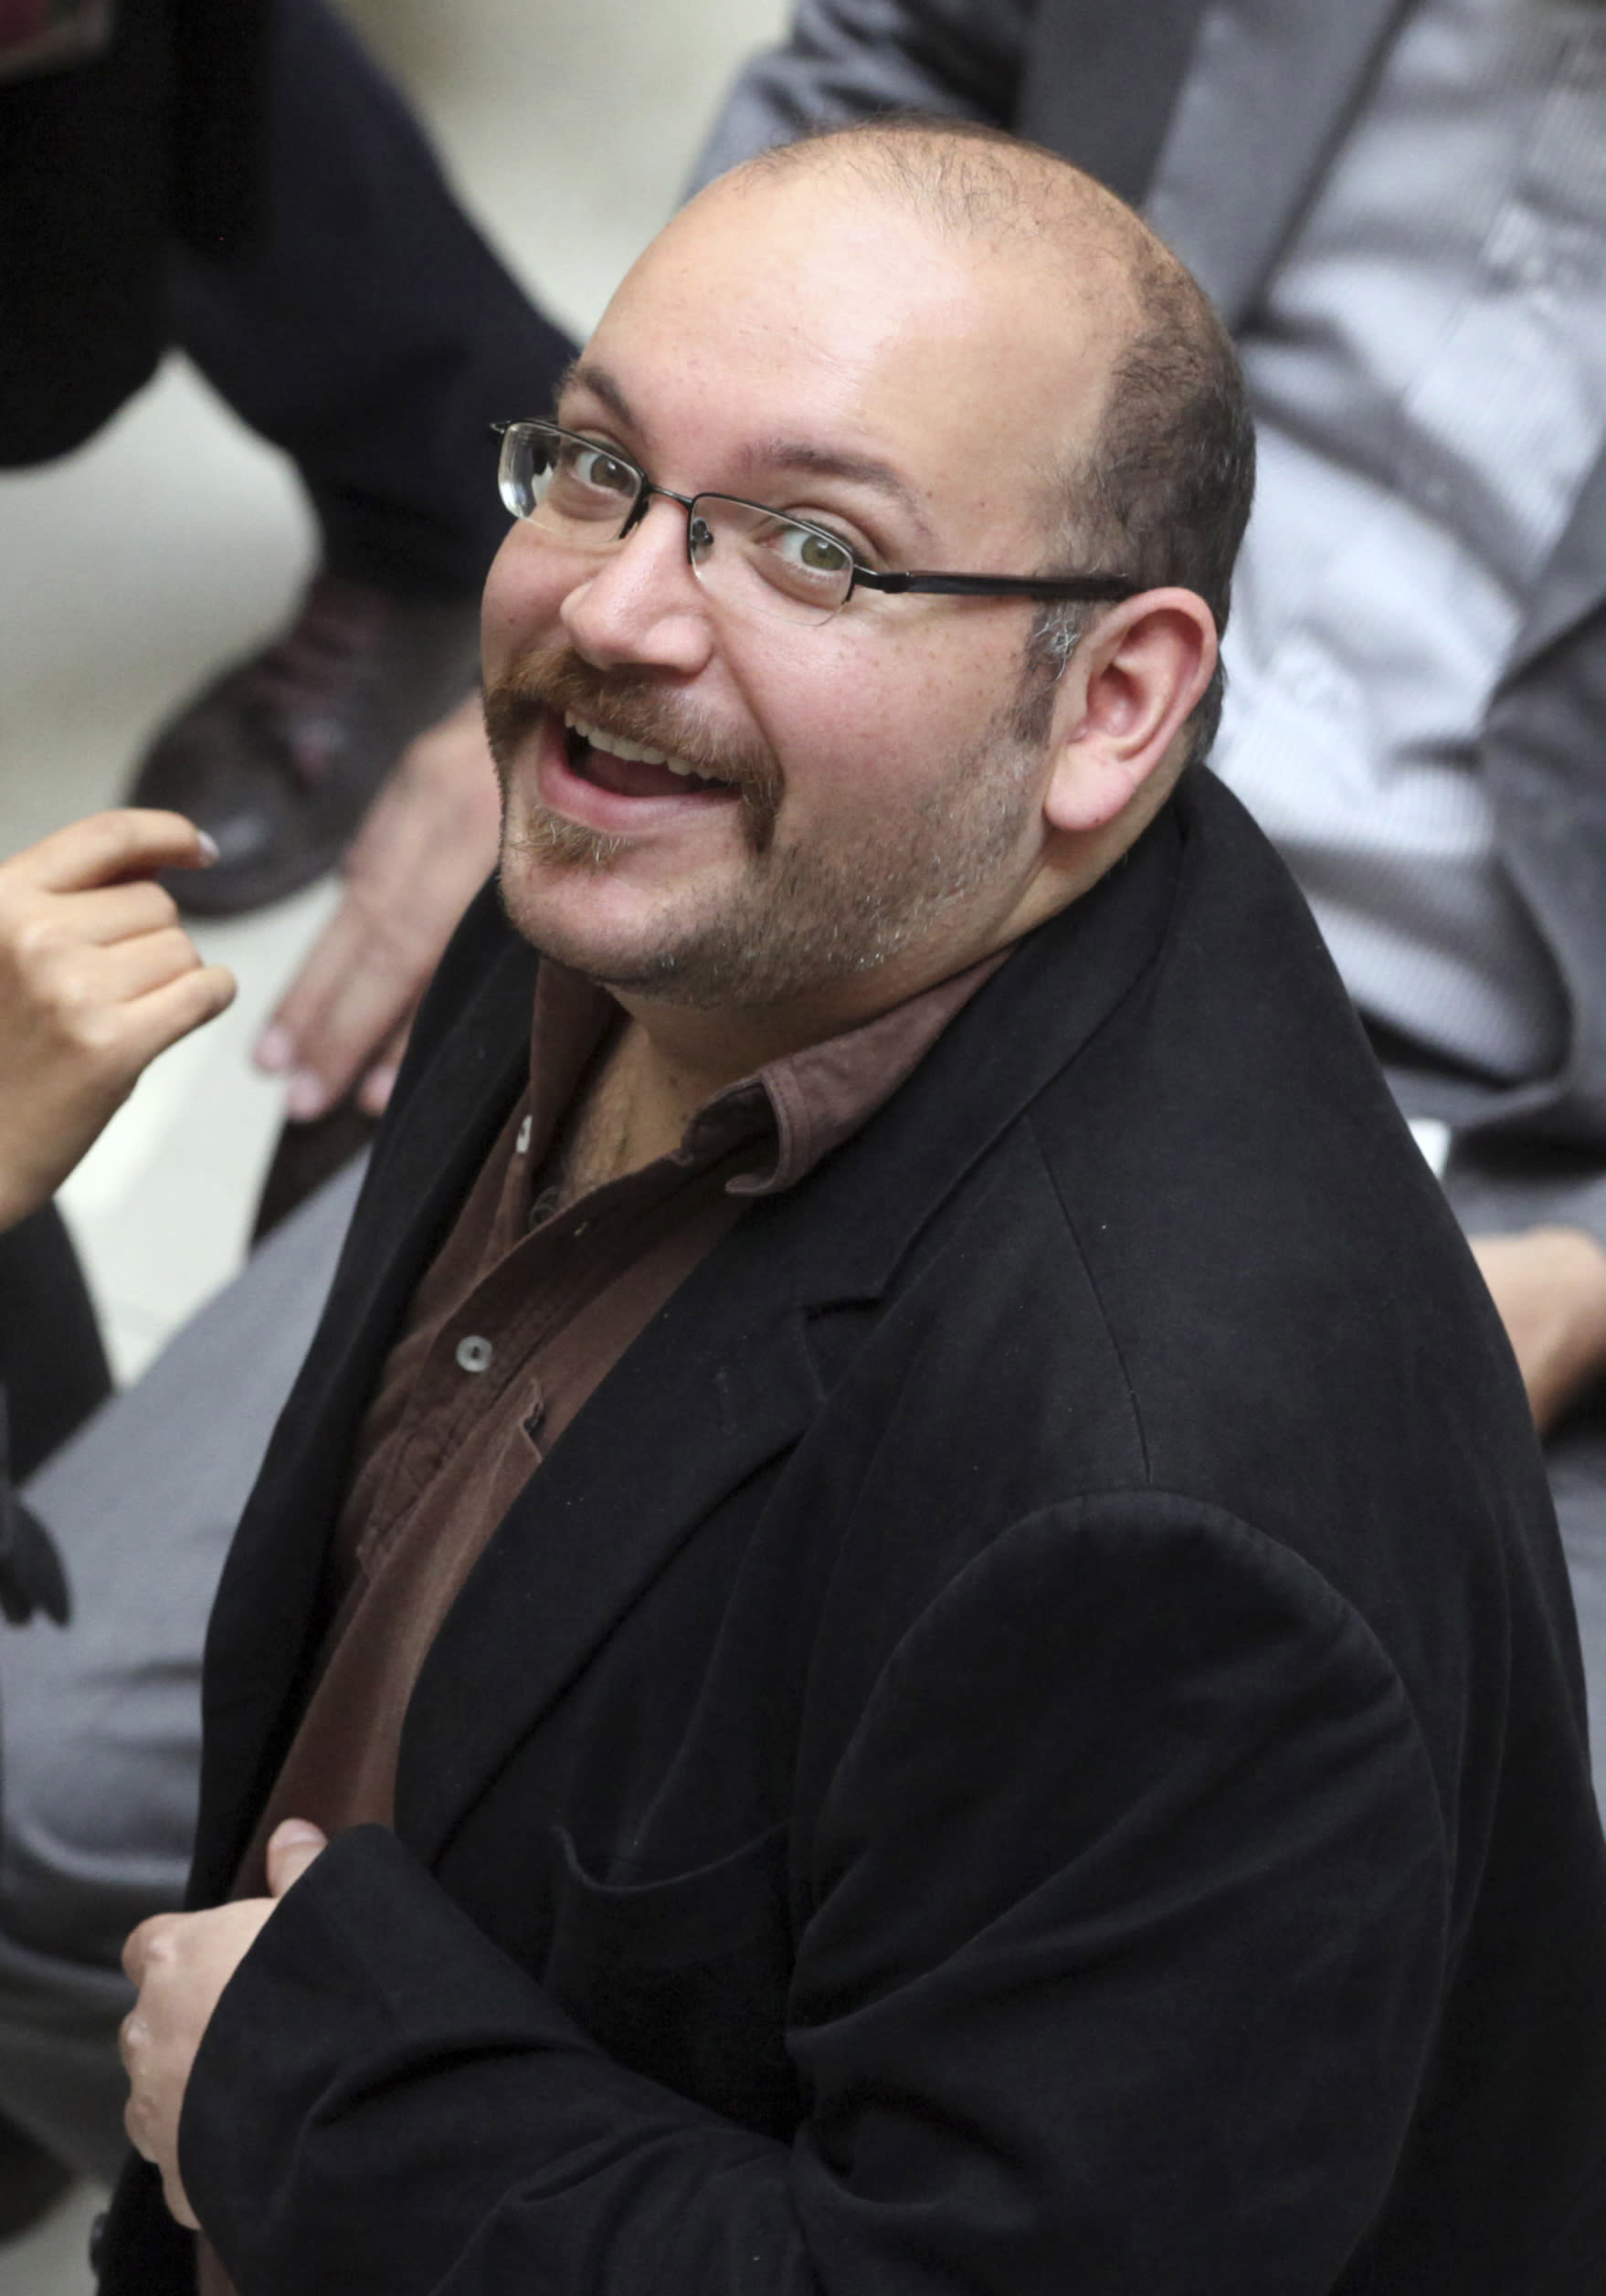 Report: Iran says Washington Post writer to face trial soon